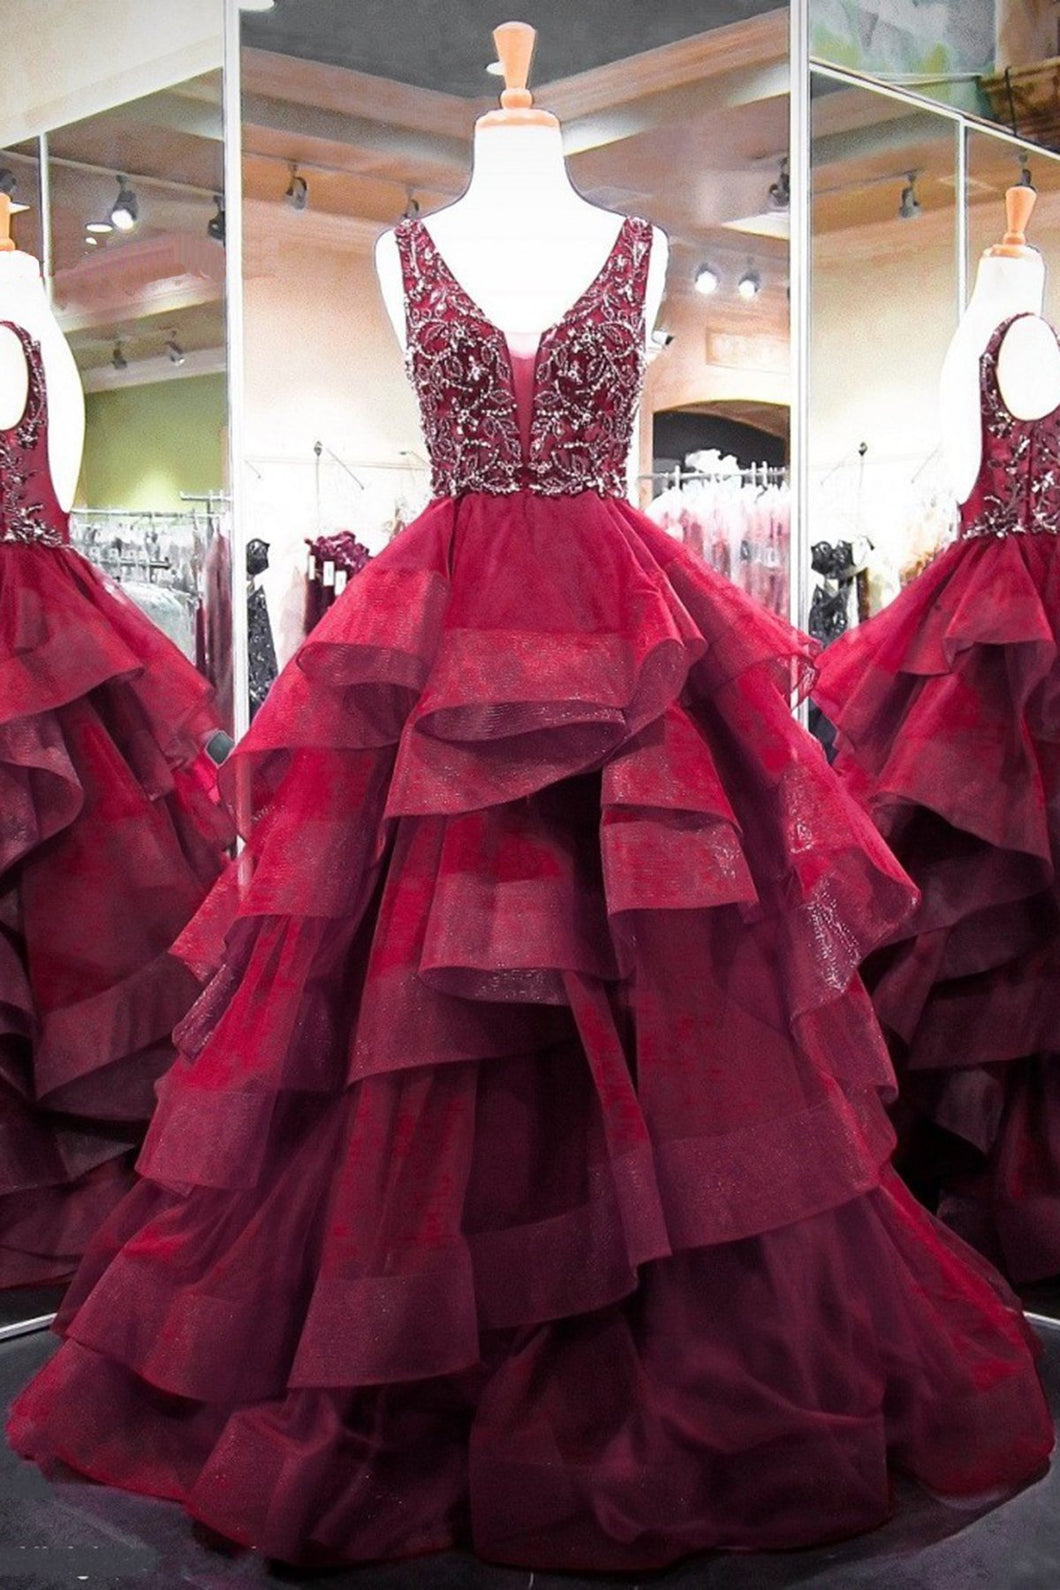 2019 Prom Dresses | Burgundy Tulle Long Beaded Open Back Evening Dress, Layered Formal Prom Dress